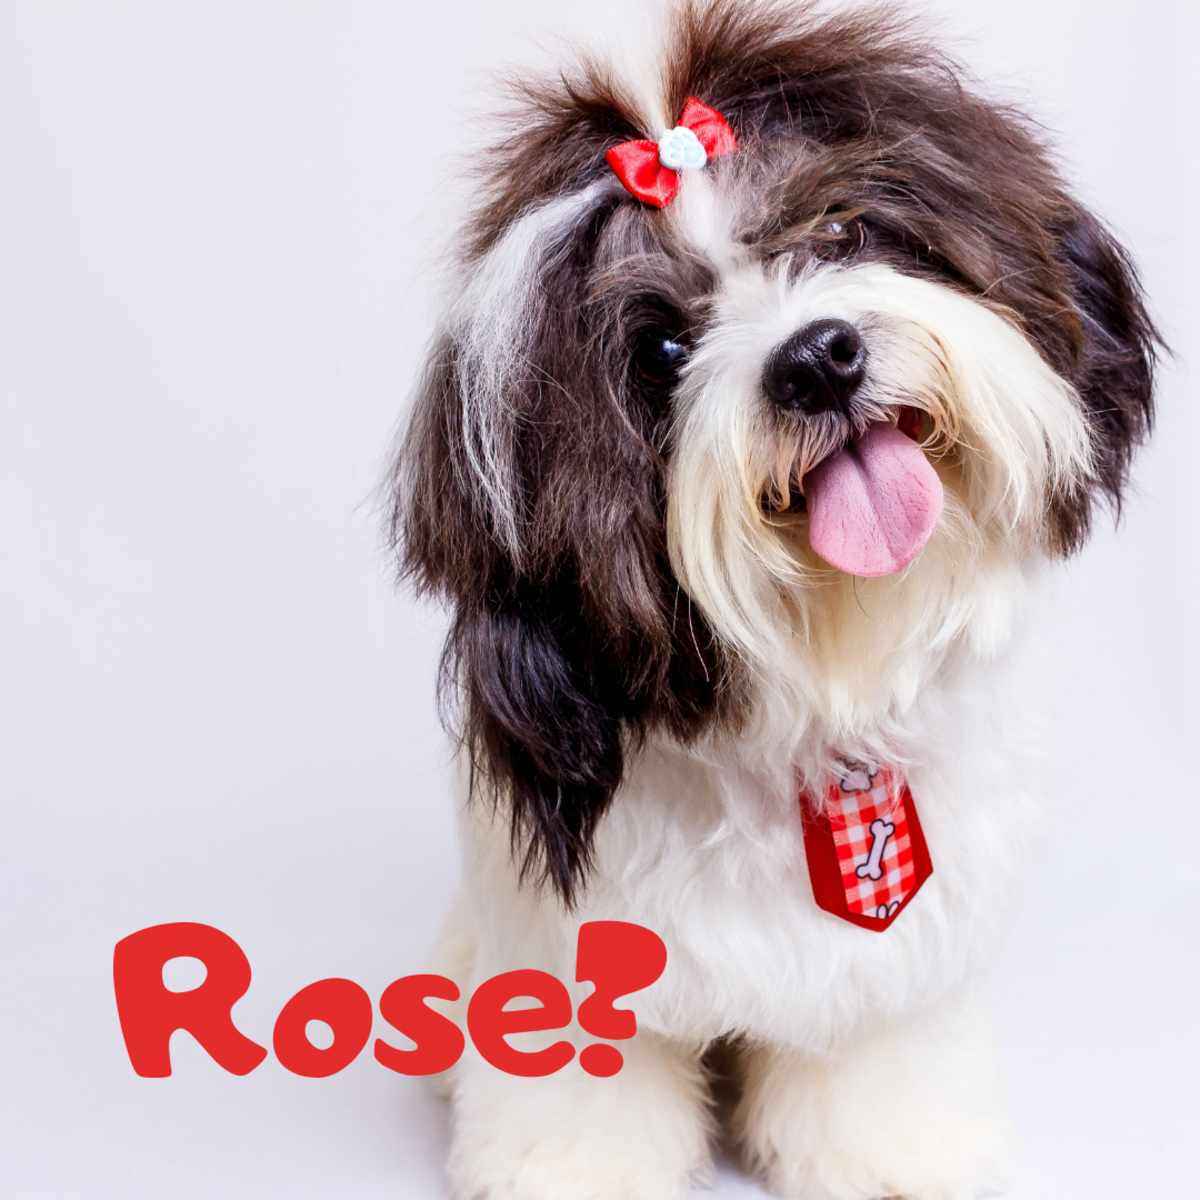 Is she a Rose?